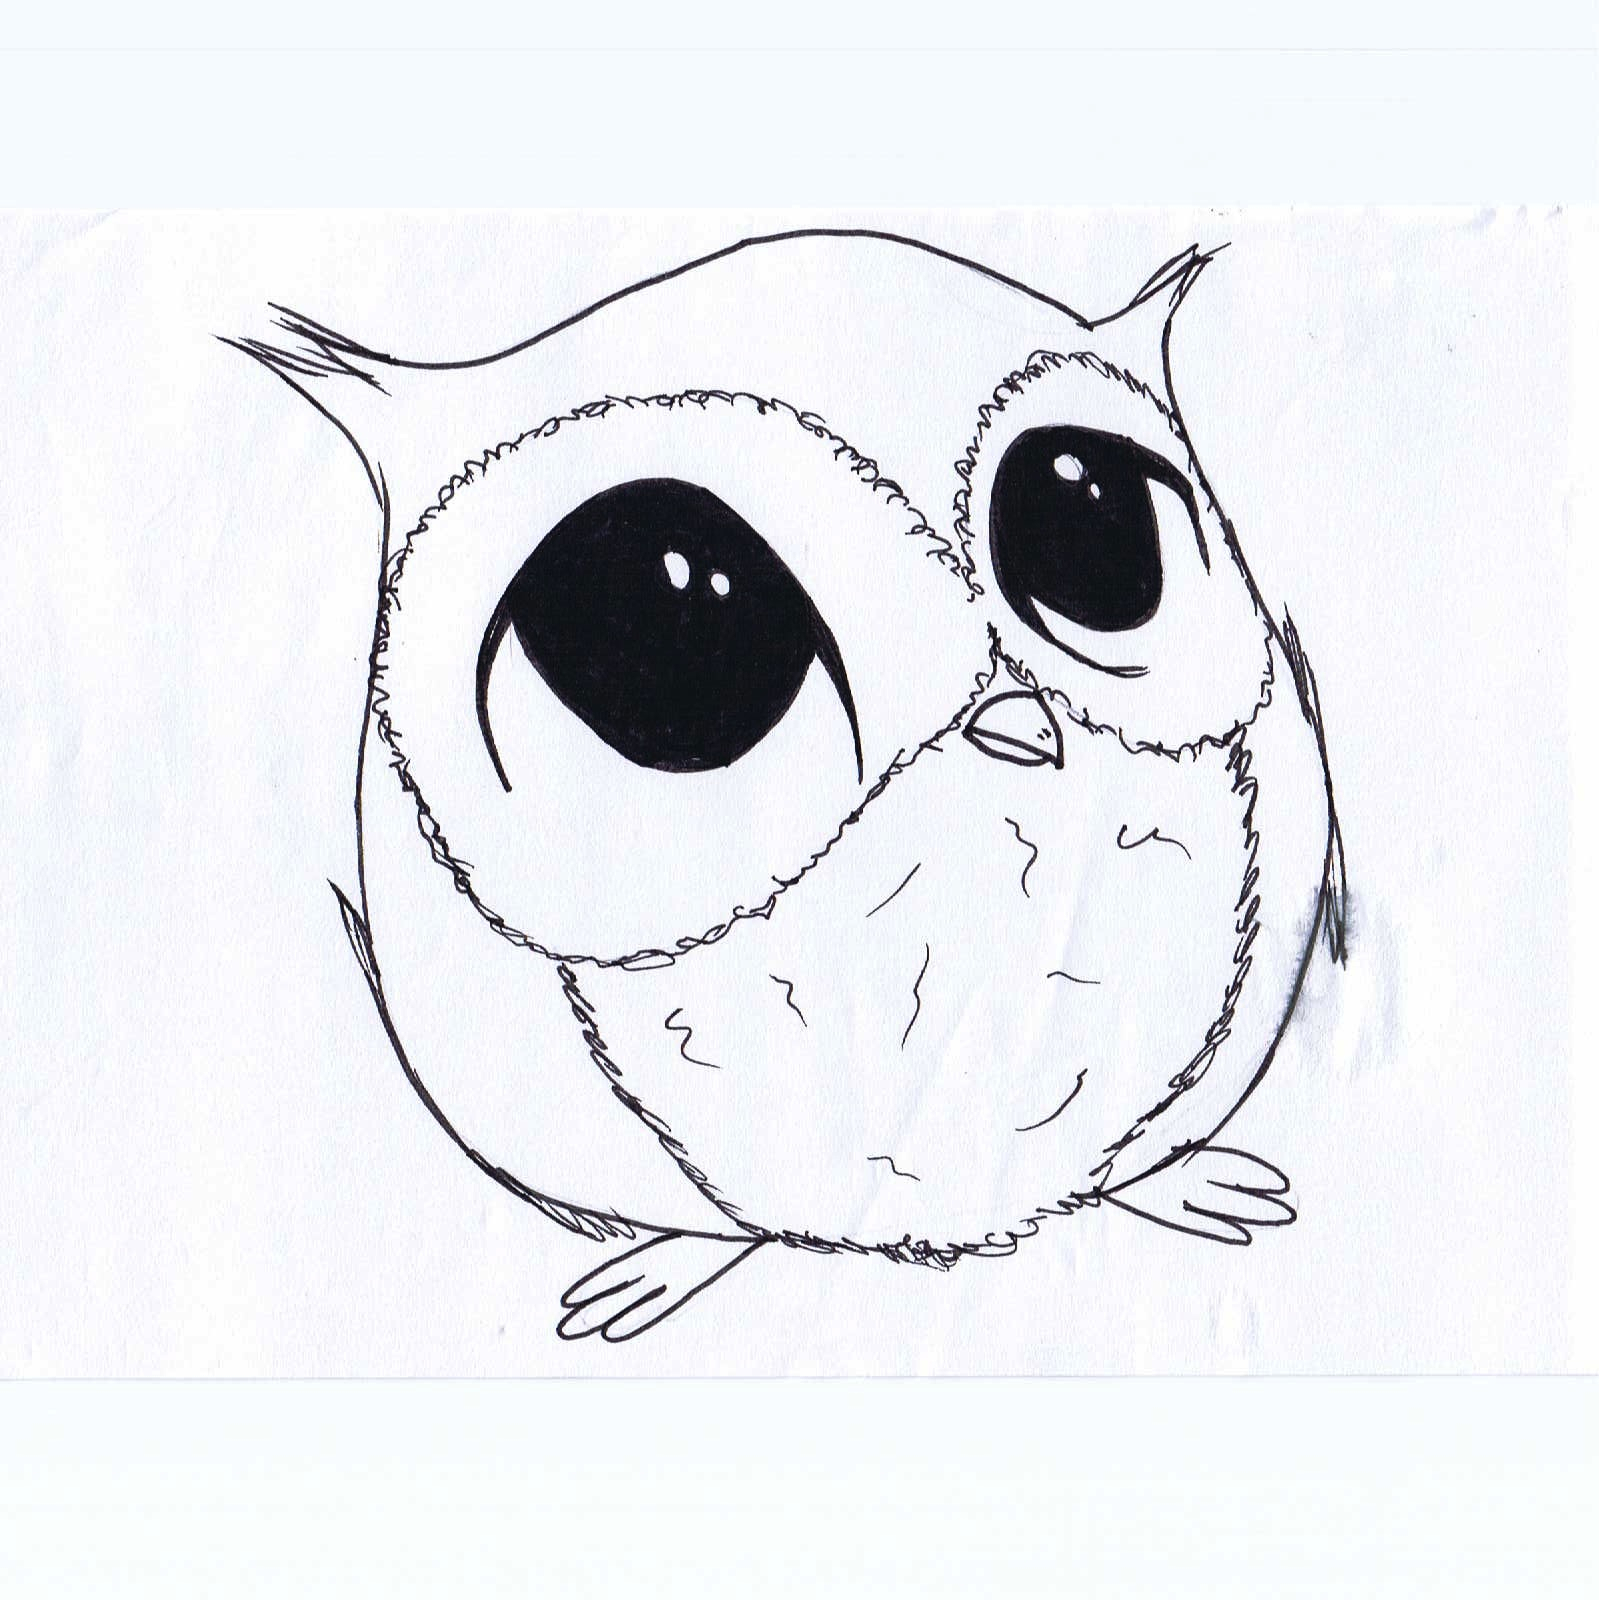 1599x1600 Cute Drawings Of Owls Cute Drawings Of Owls How To Draw A Super